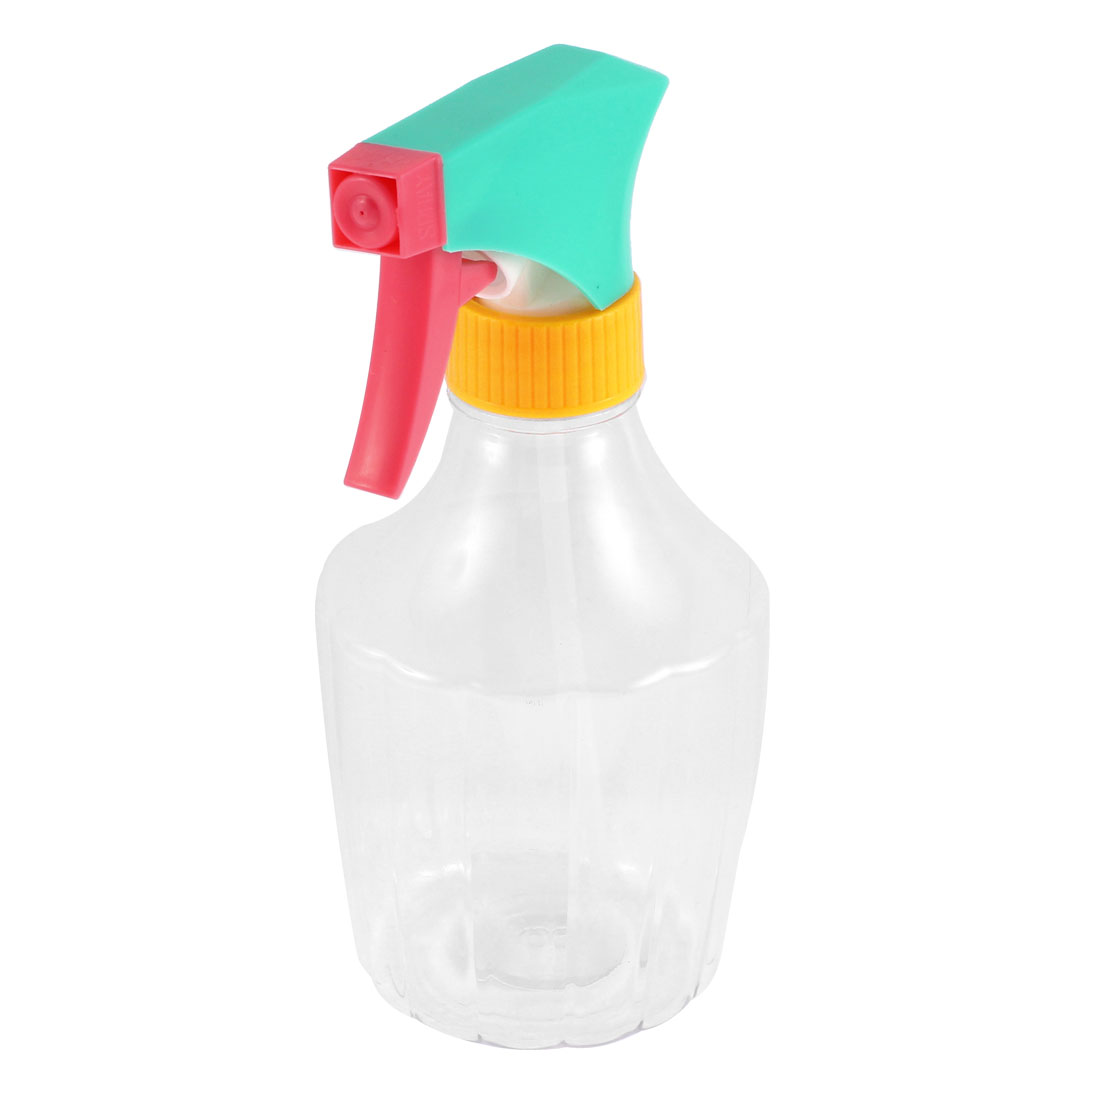 Home Gardening Hair Salon Cleaning Plastic Handheld Trigger Spray Bottle 300ml